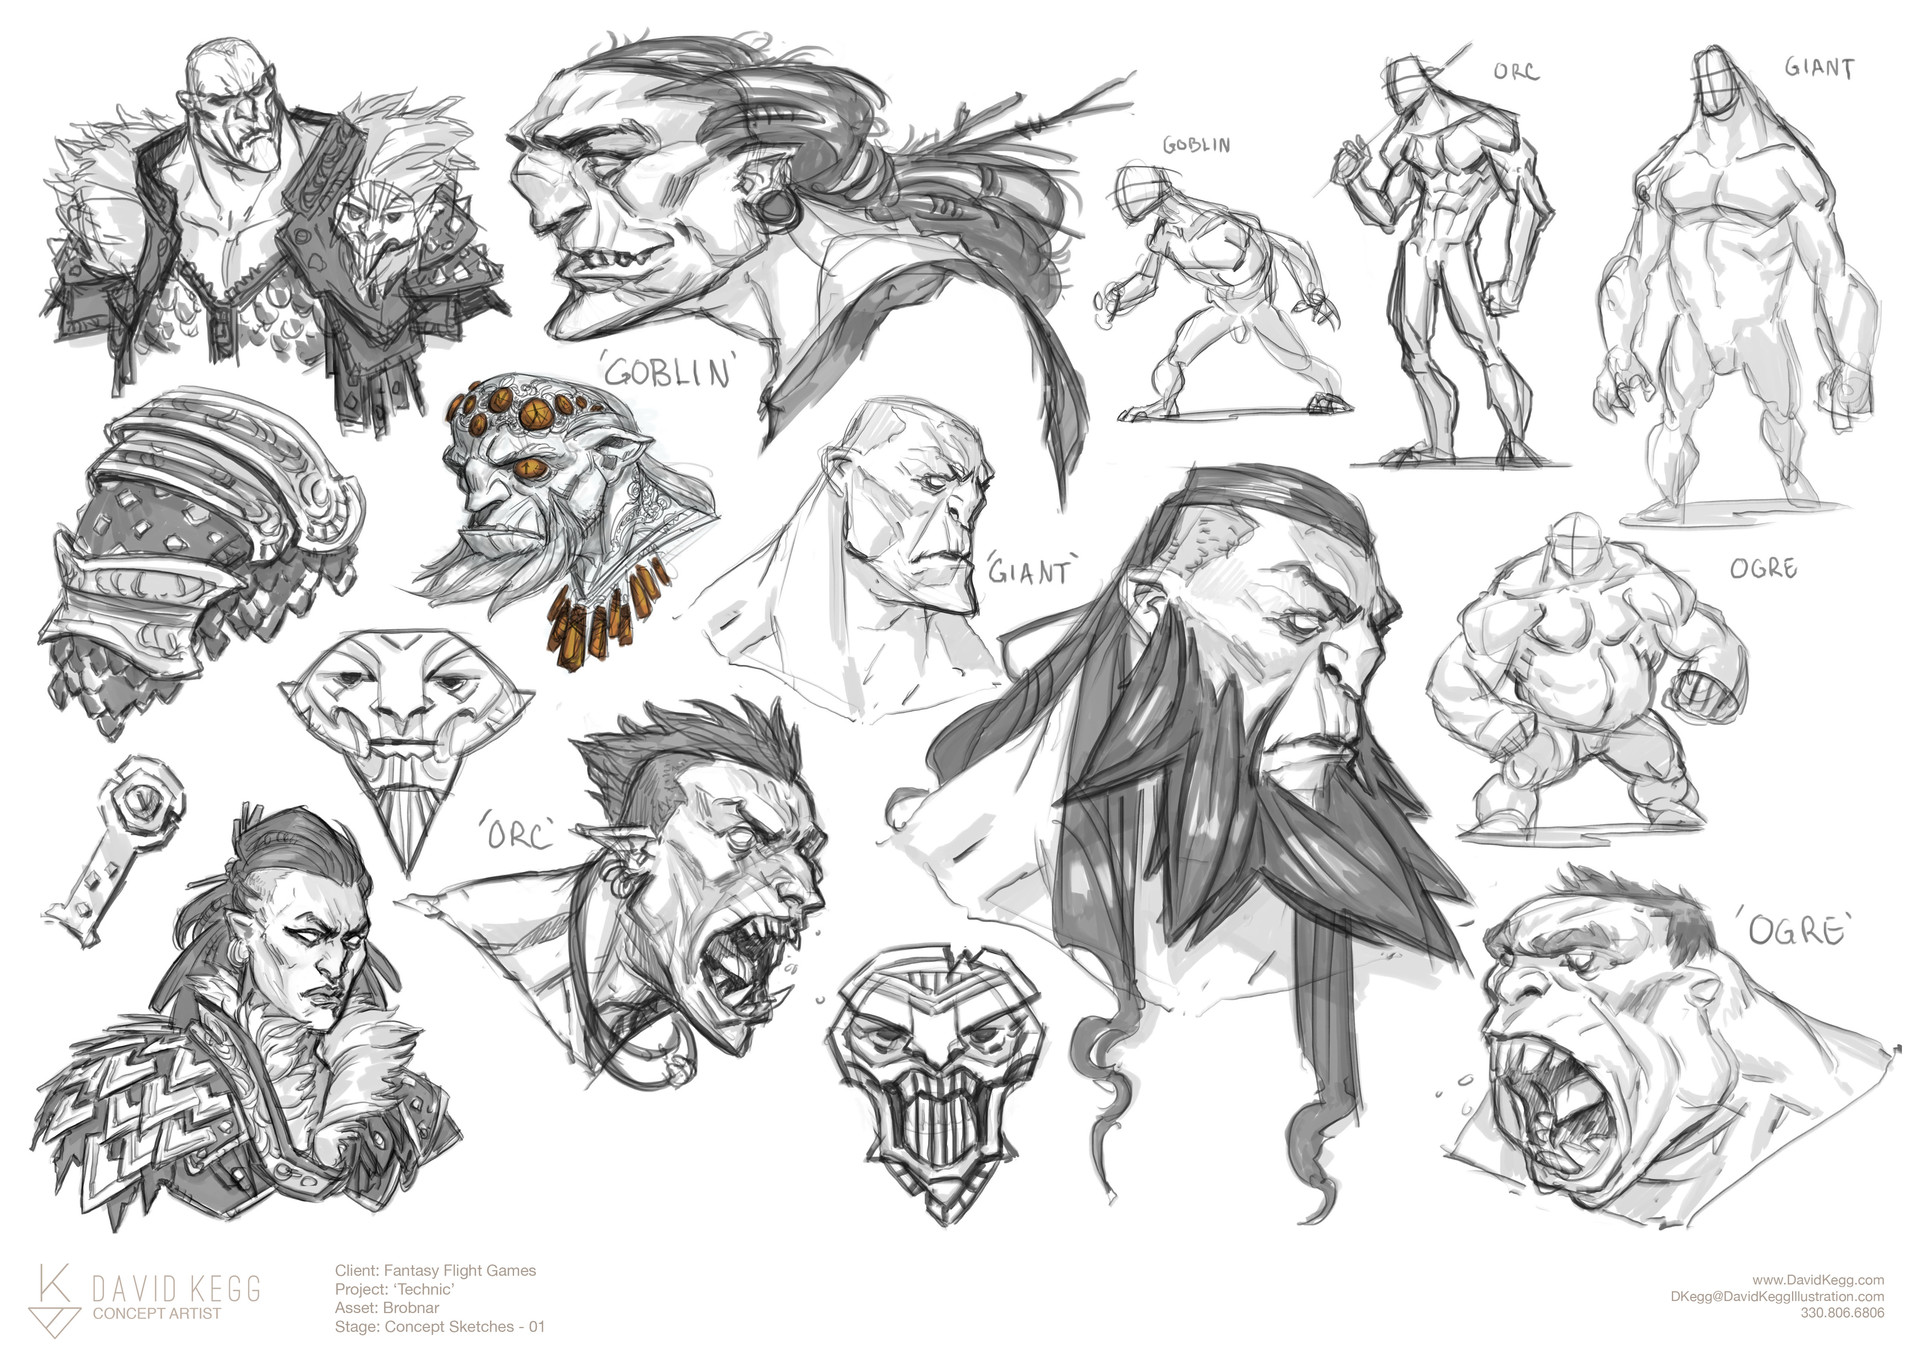 David kegg kegg ffgtechnic brobnar conceptsketches 01